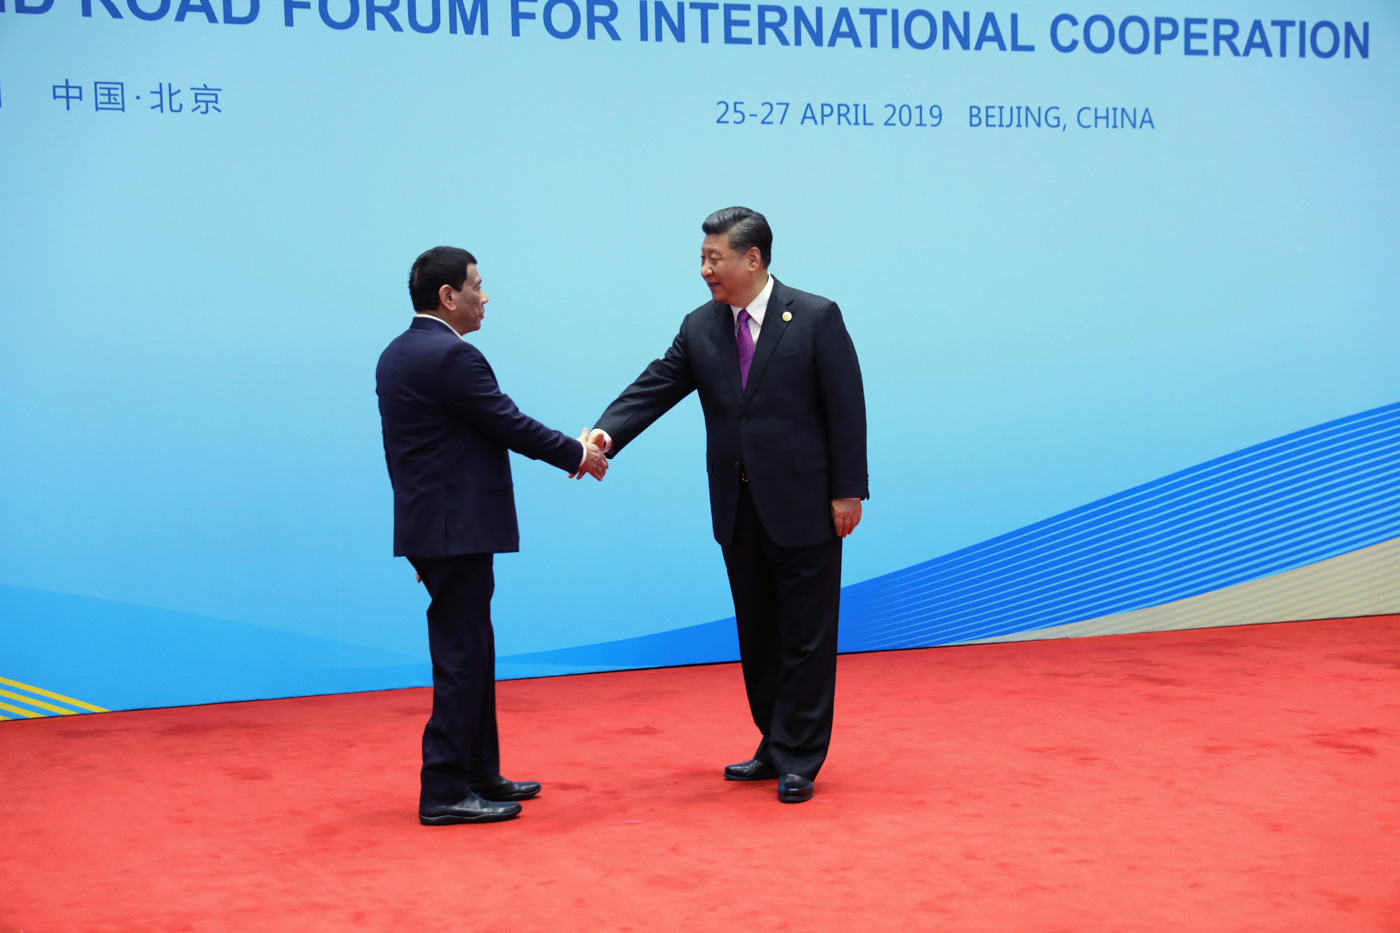 GOOD FRIENDS. President Rodrigo Duterte receives a warm welcome from Chinese President Xi Jinping before the Leaders' Roundtable Discussion of the 2nd Belt and Road Forum for International Cooperation at the Yanqi Lake International Convention Center on April 27, 2019. Malacau00f1ang photo